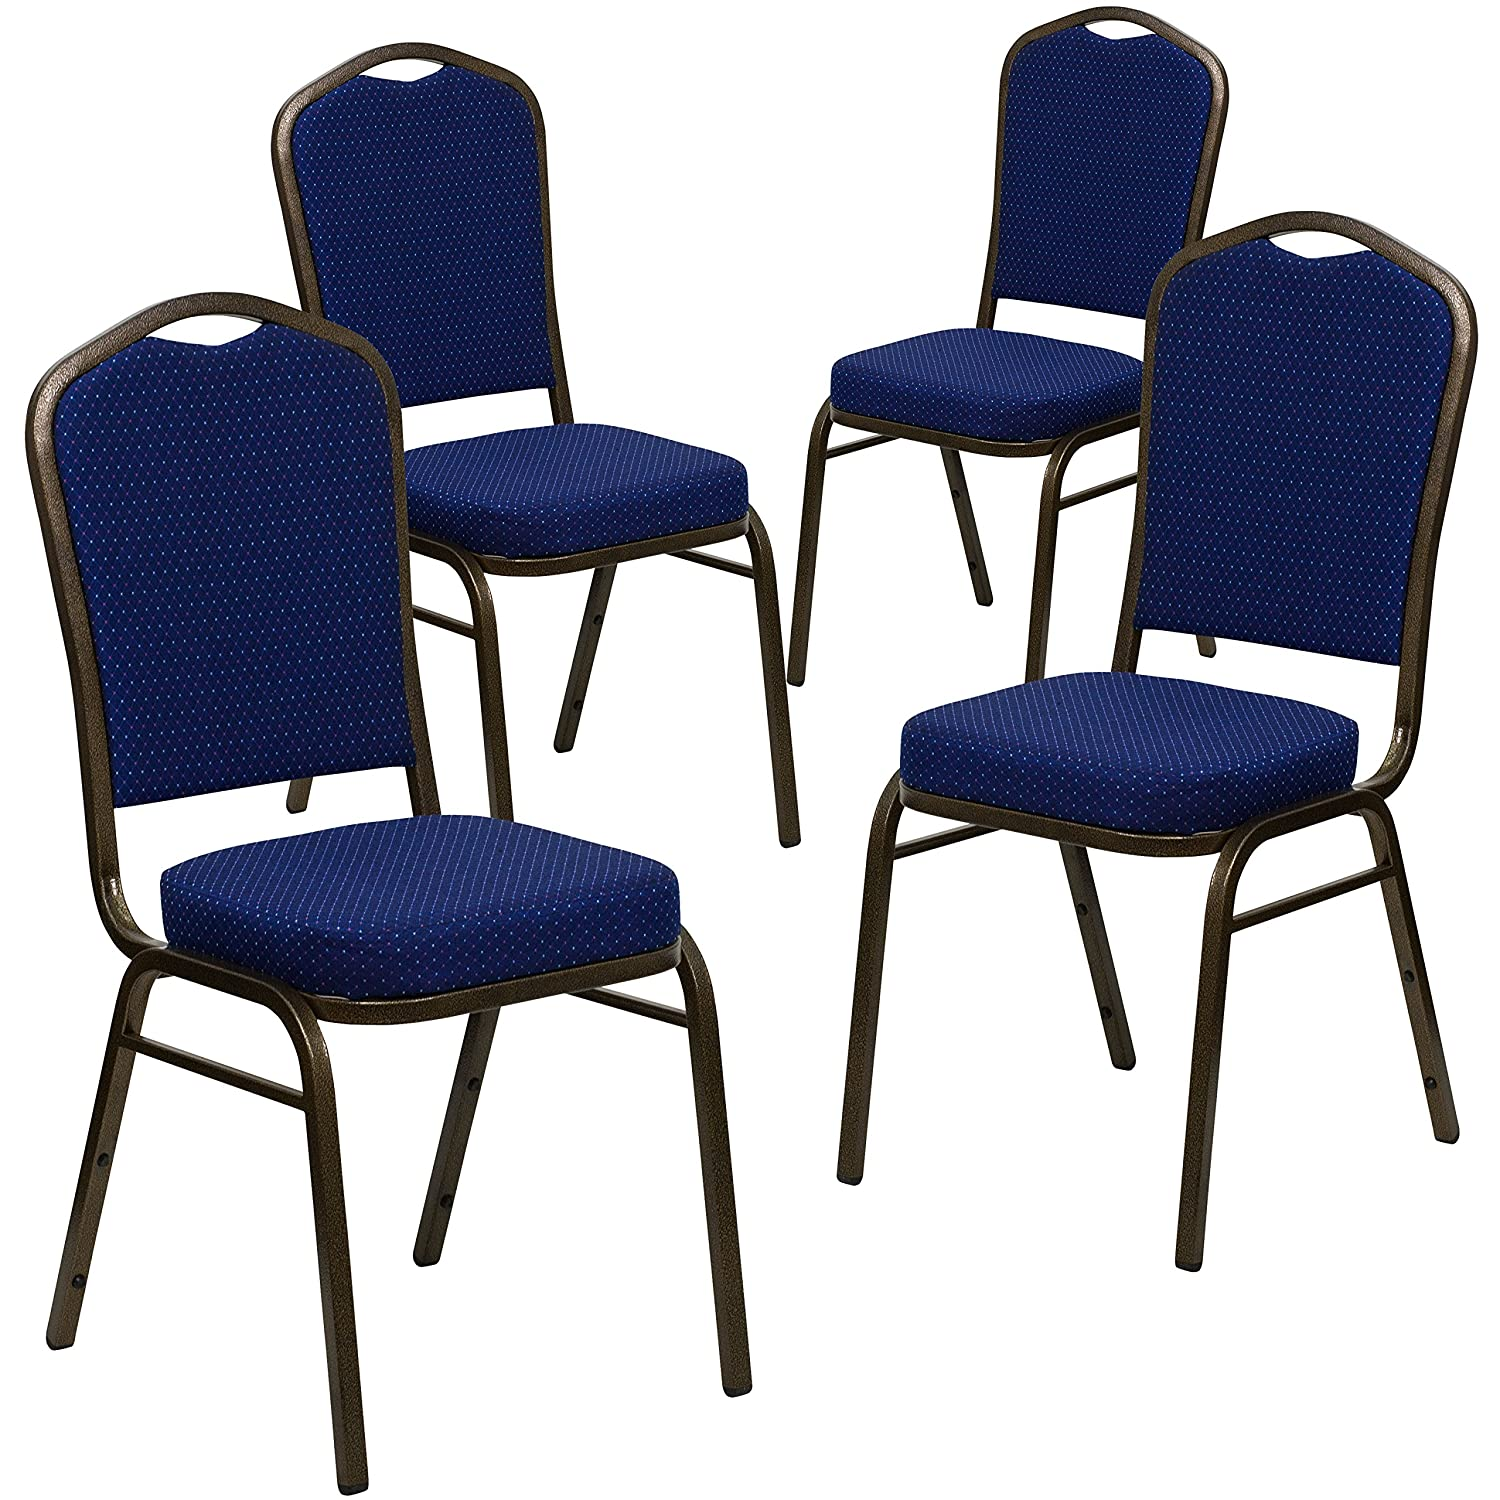 Flash Furniture 4 Pk. HERCULES Series Crown Back Stacking Banquet Chair in Navy Blue Patterned Fabric - Gold Vein Frame